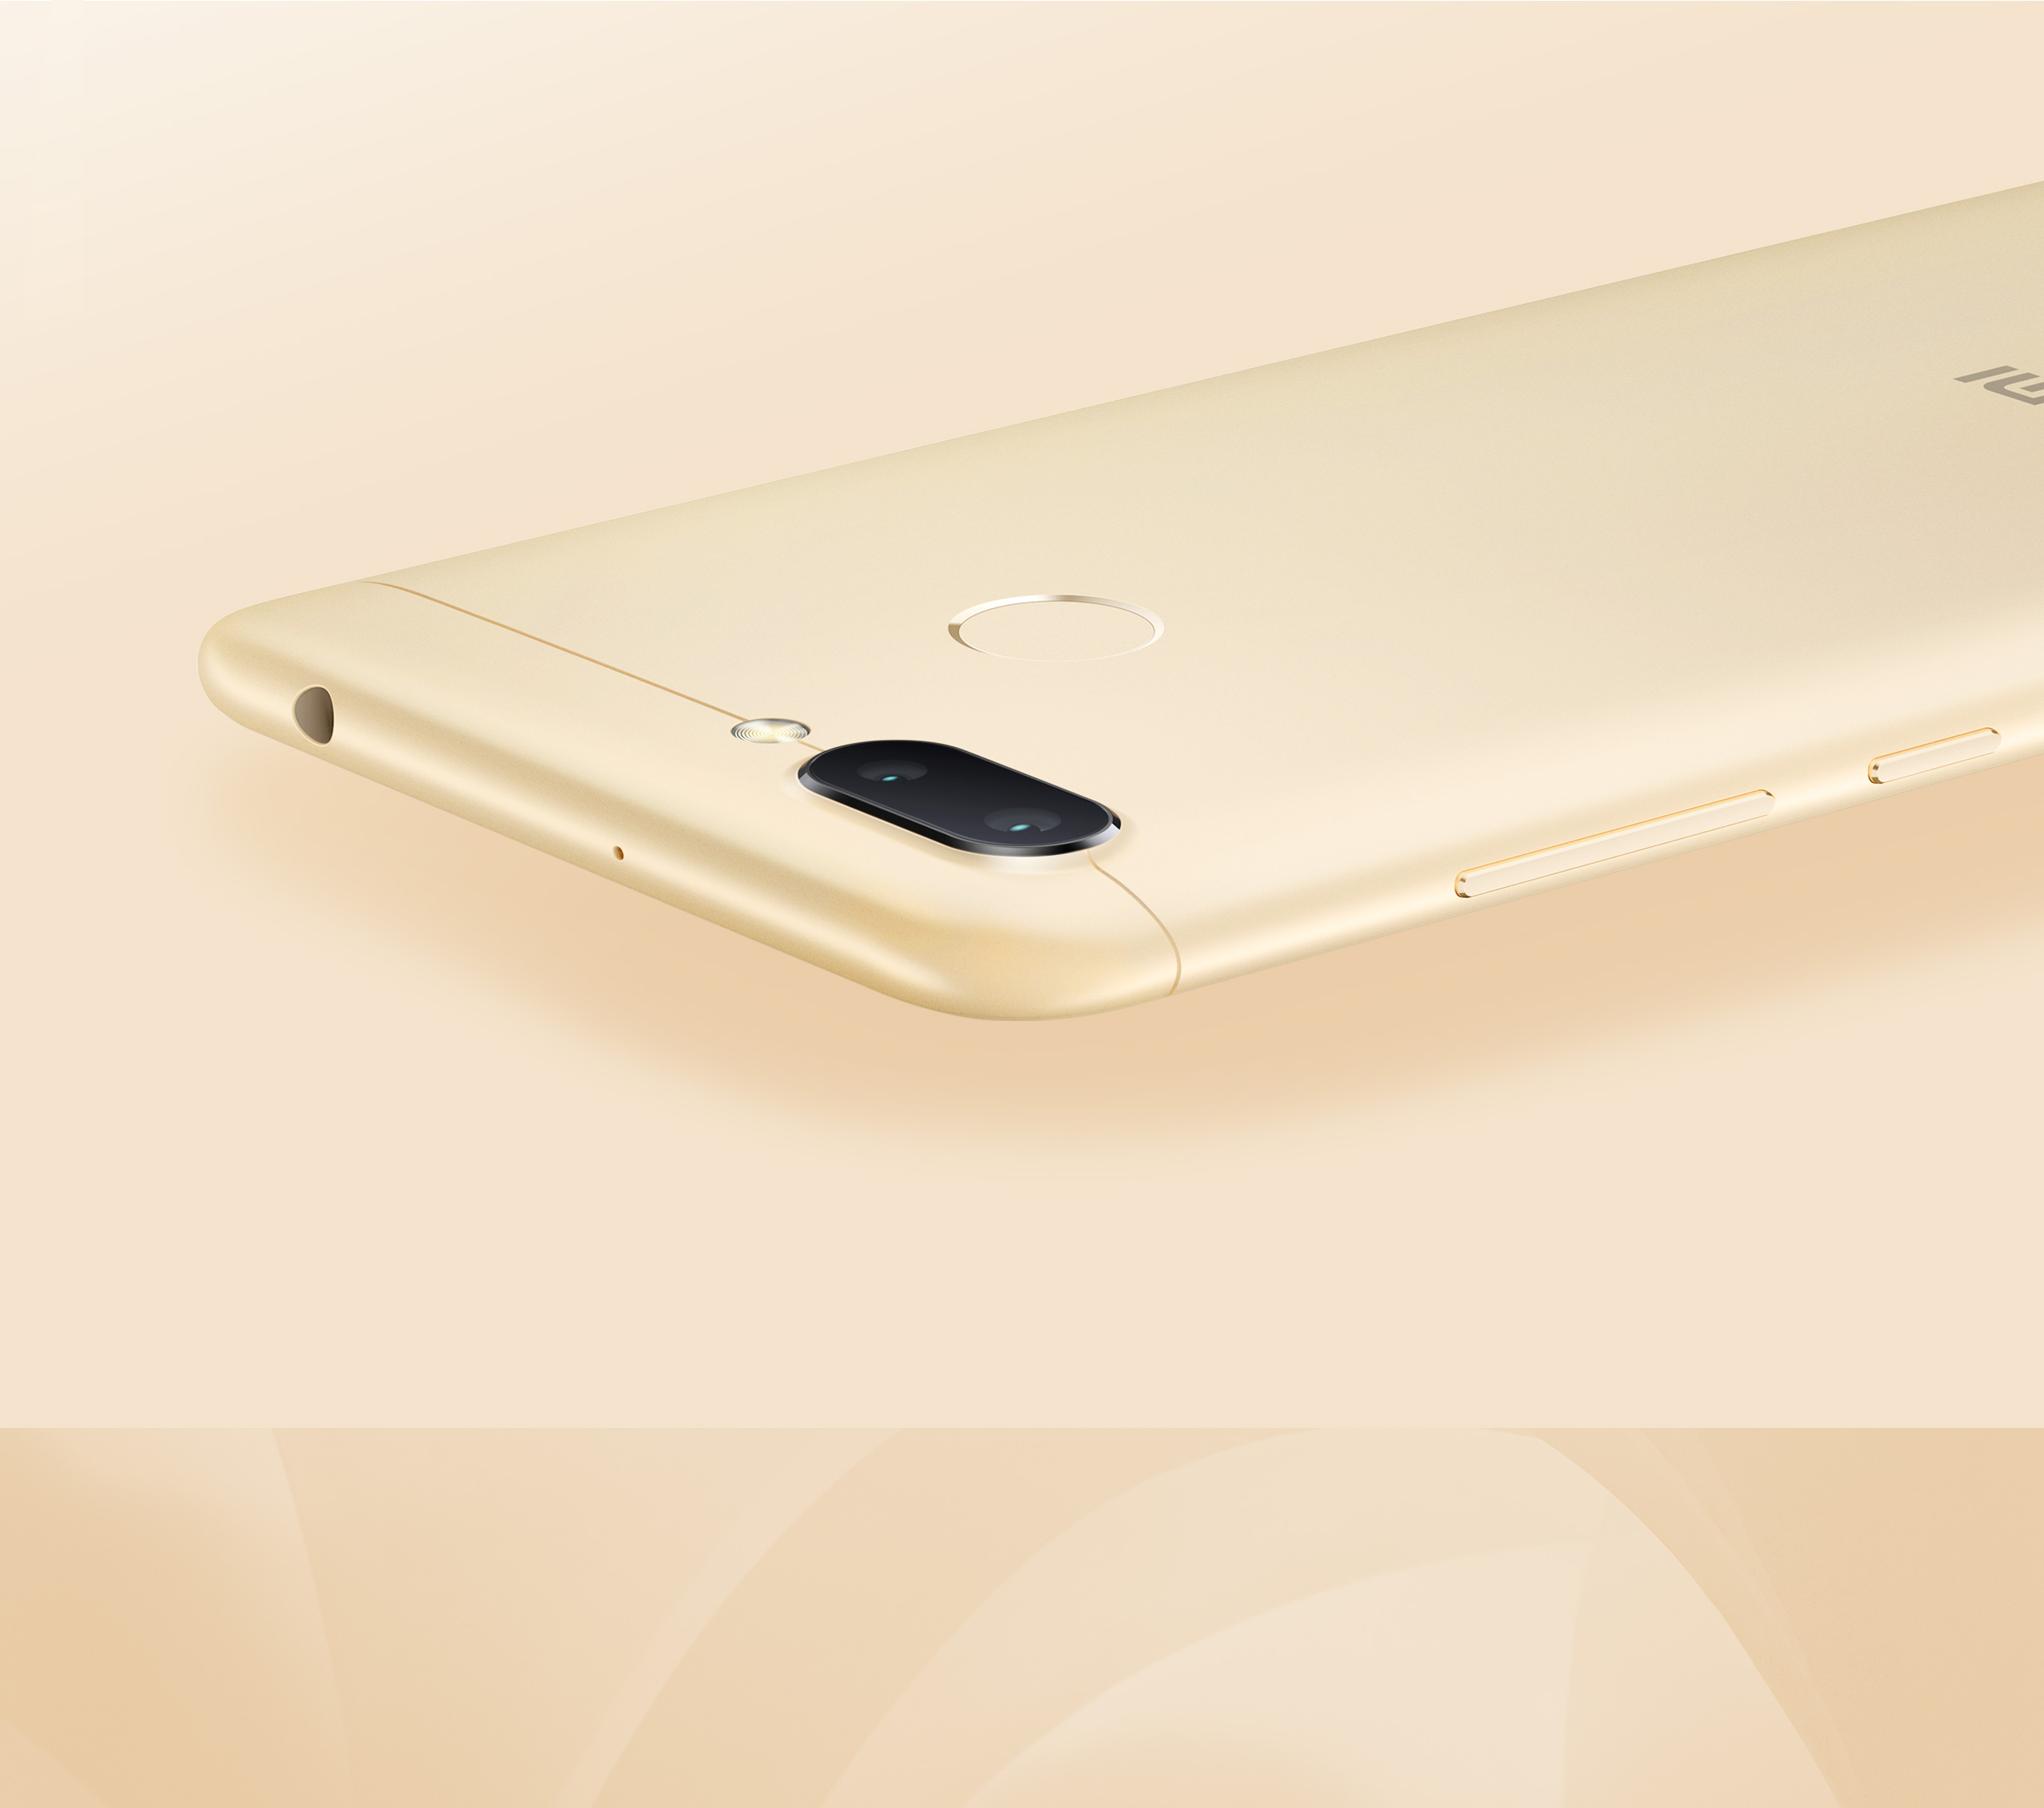 https://global.appmifile.com/f/i/2018/redmi6/summary/camera.jpg